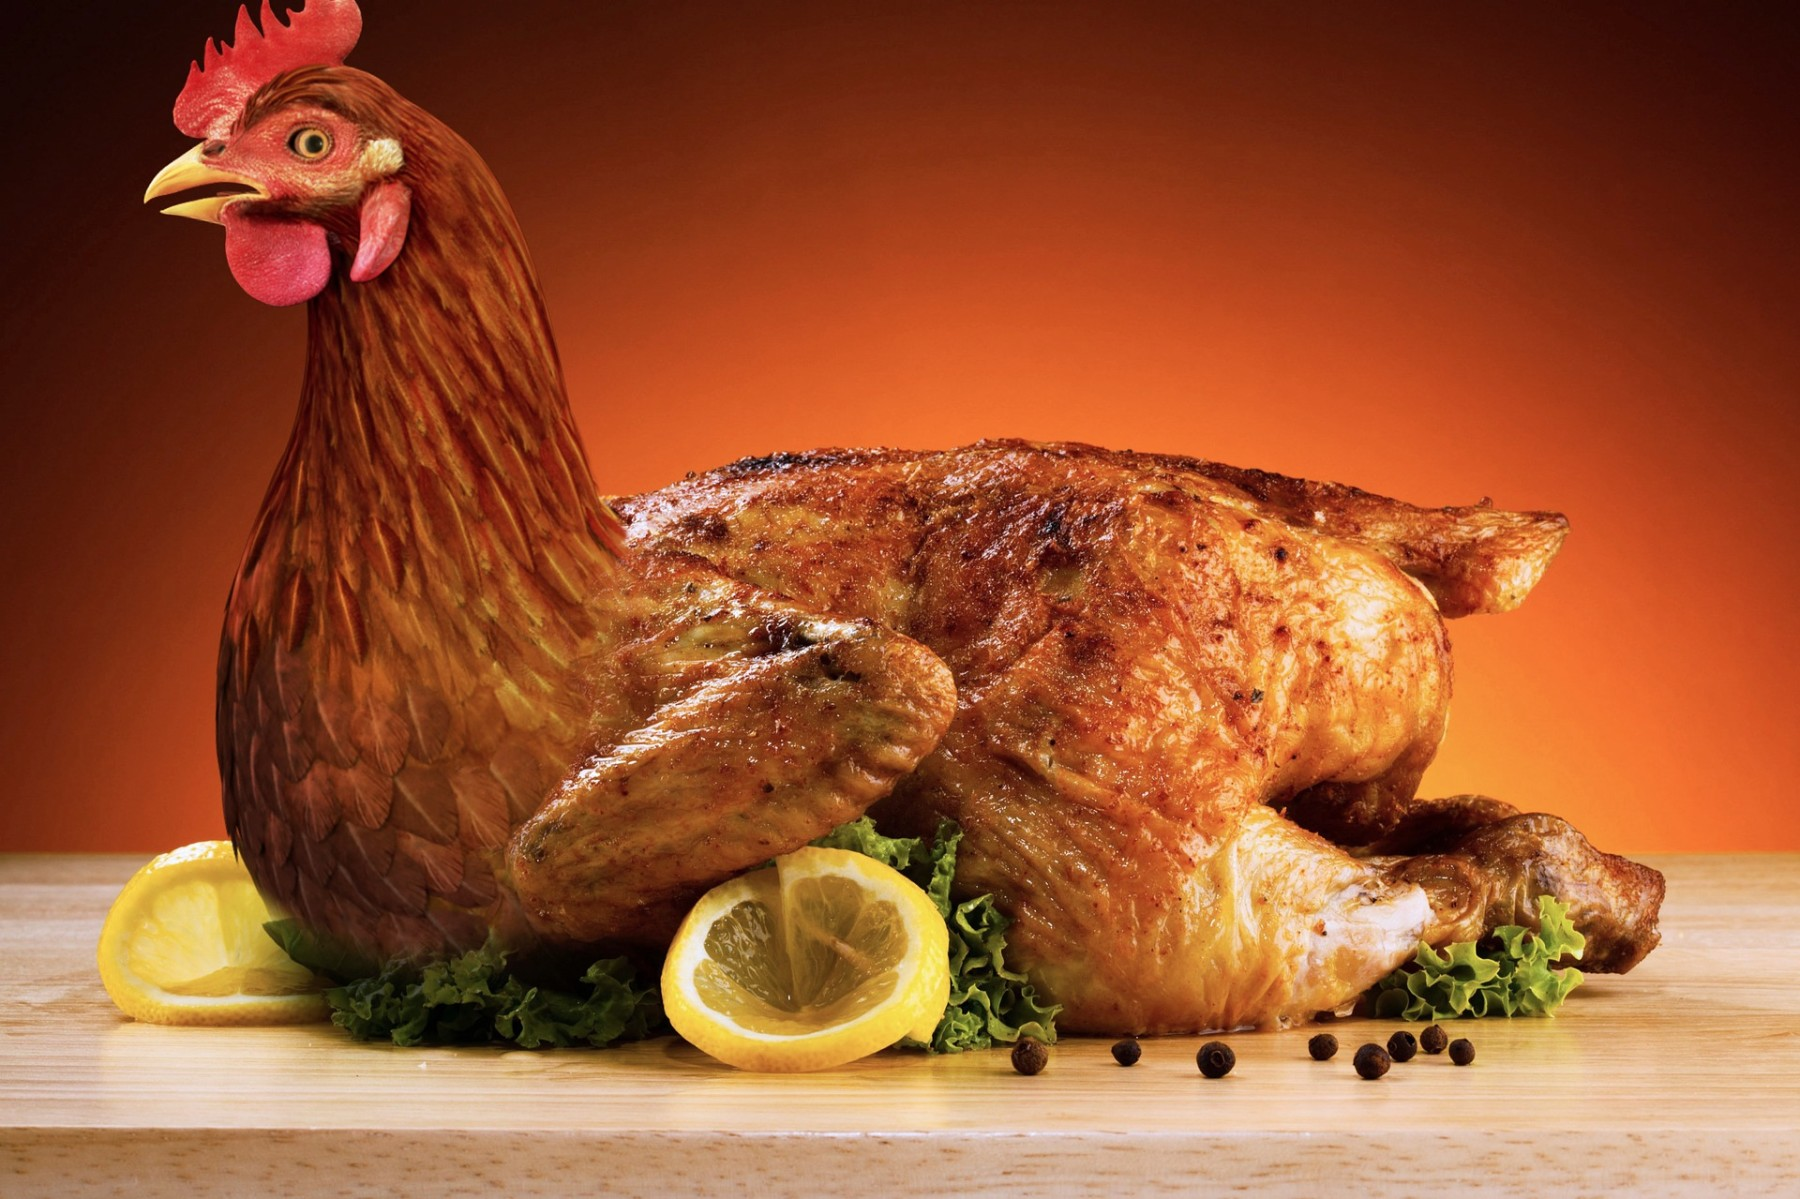 poultry-3297369_1920